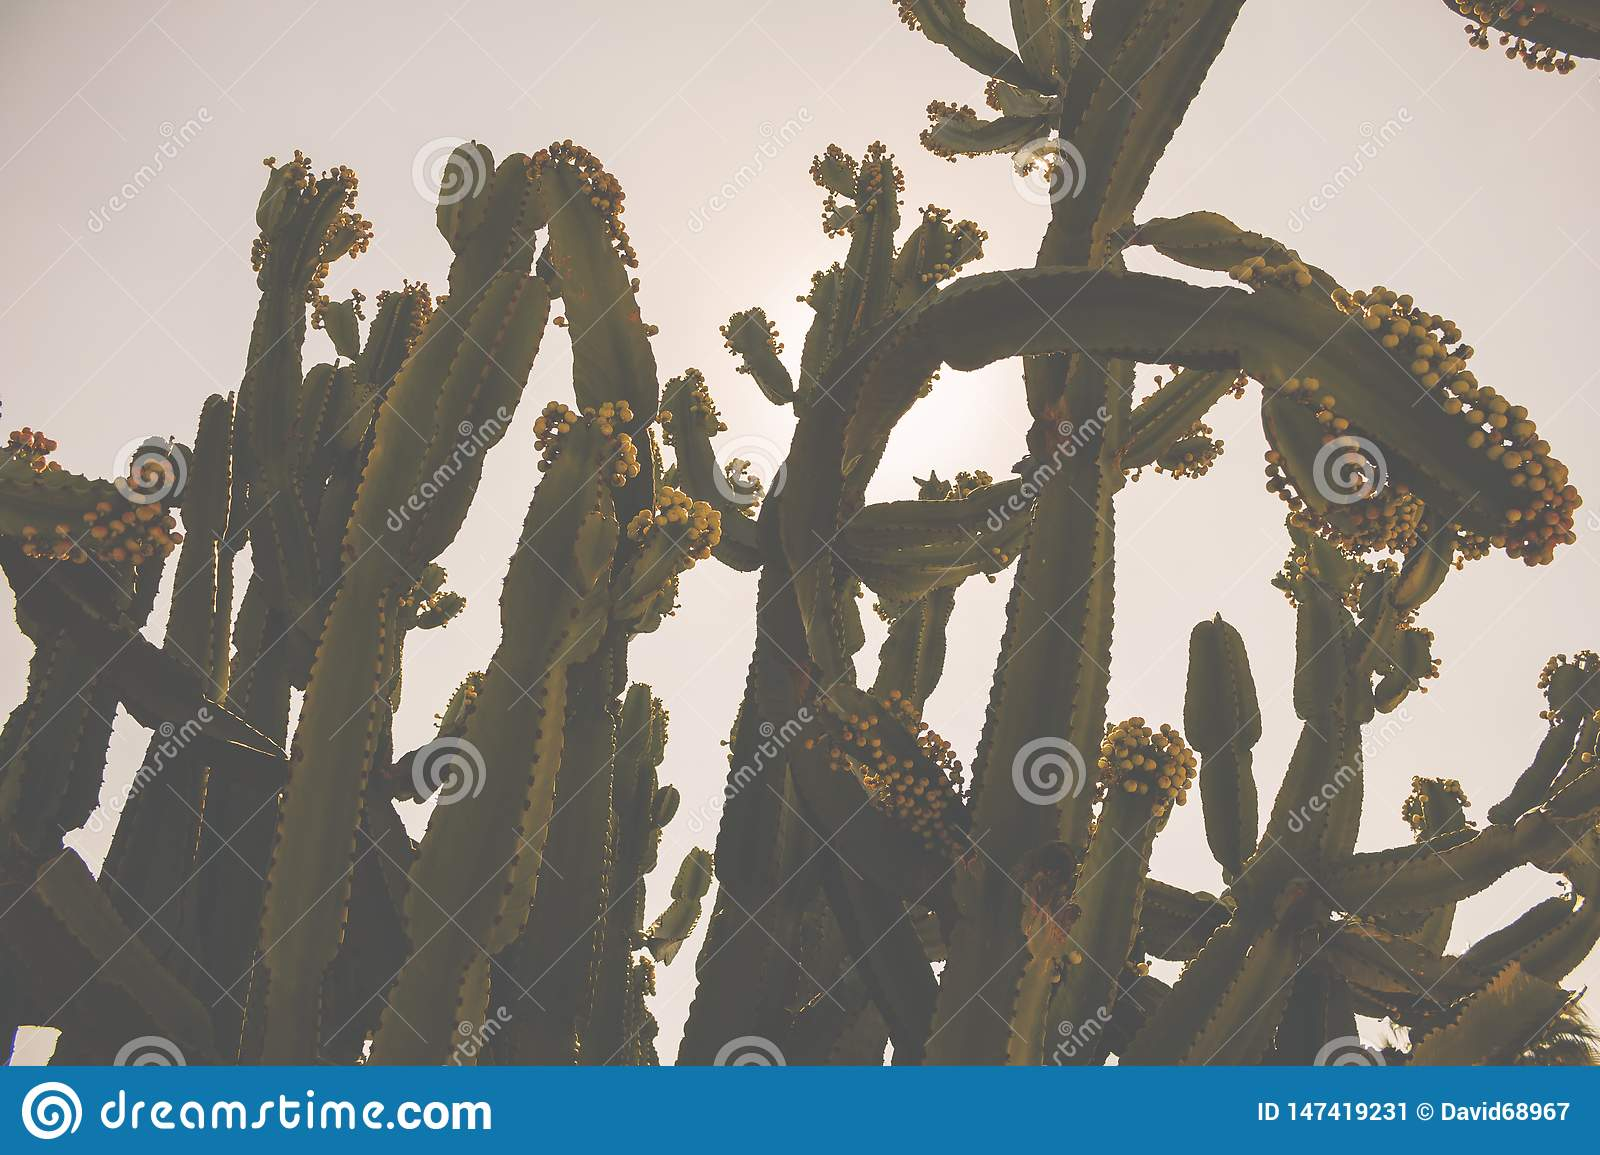 A background of cactus